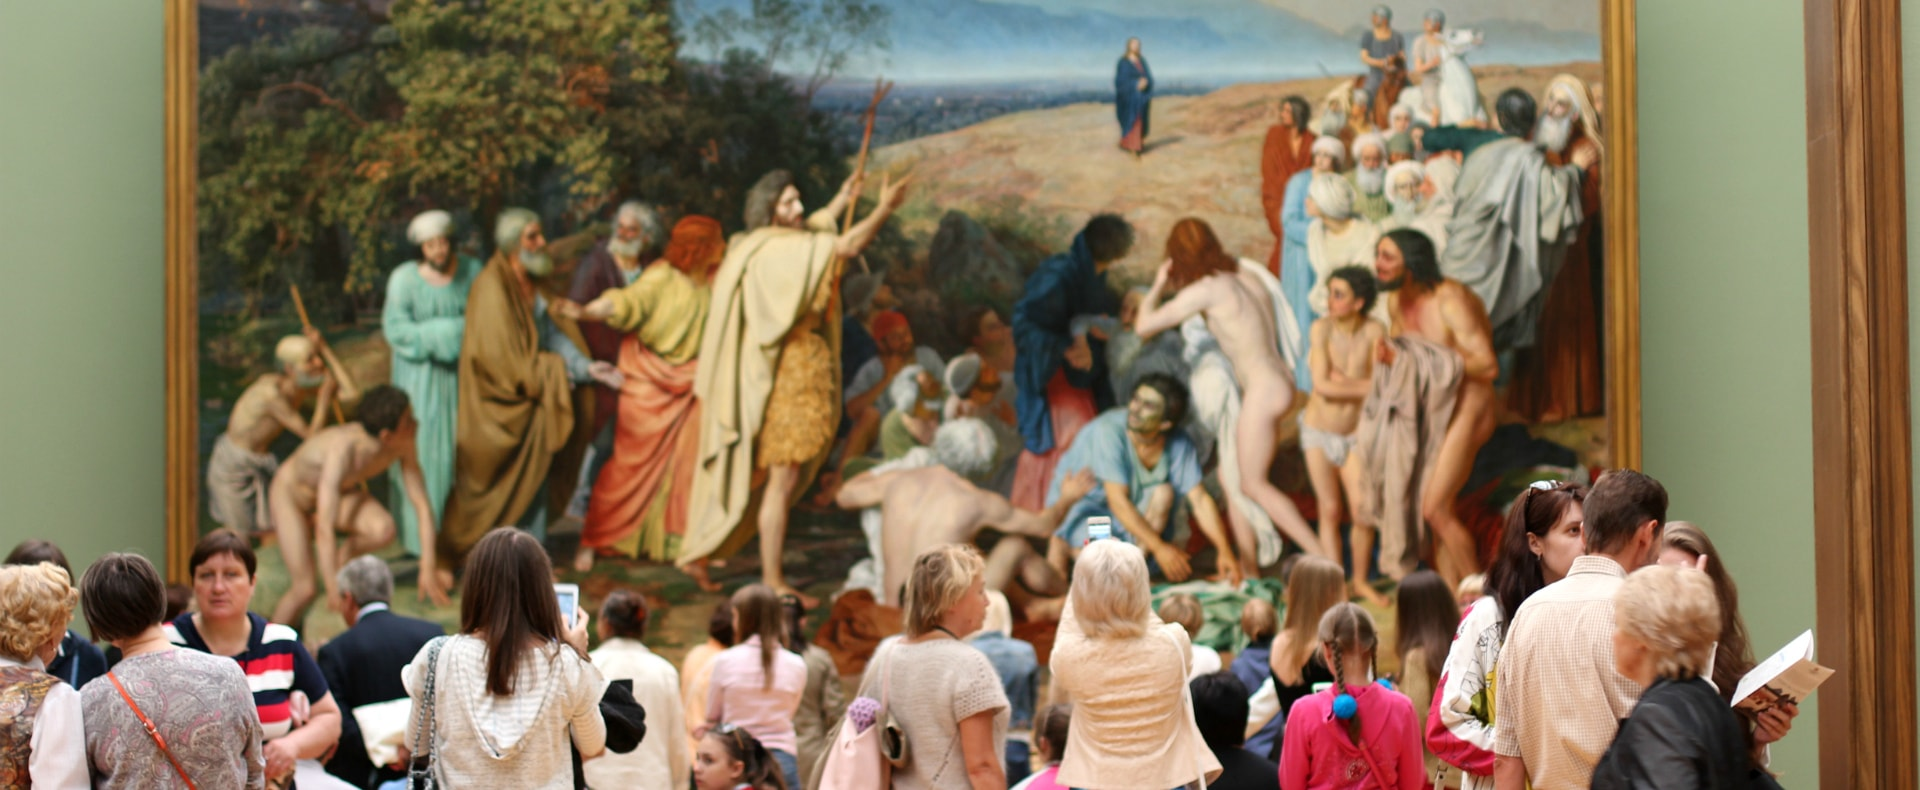 The State Tretyakov Gallery, Moscow, Russia Gallery